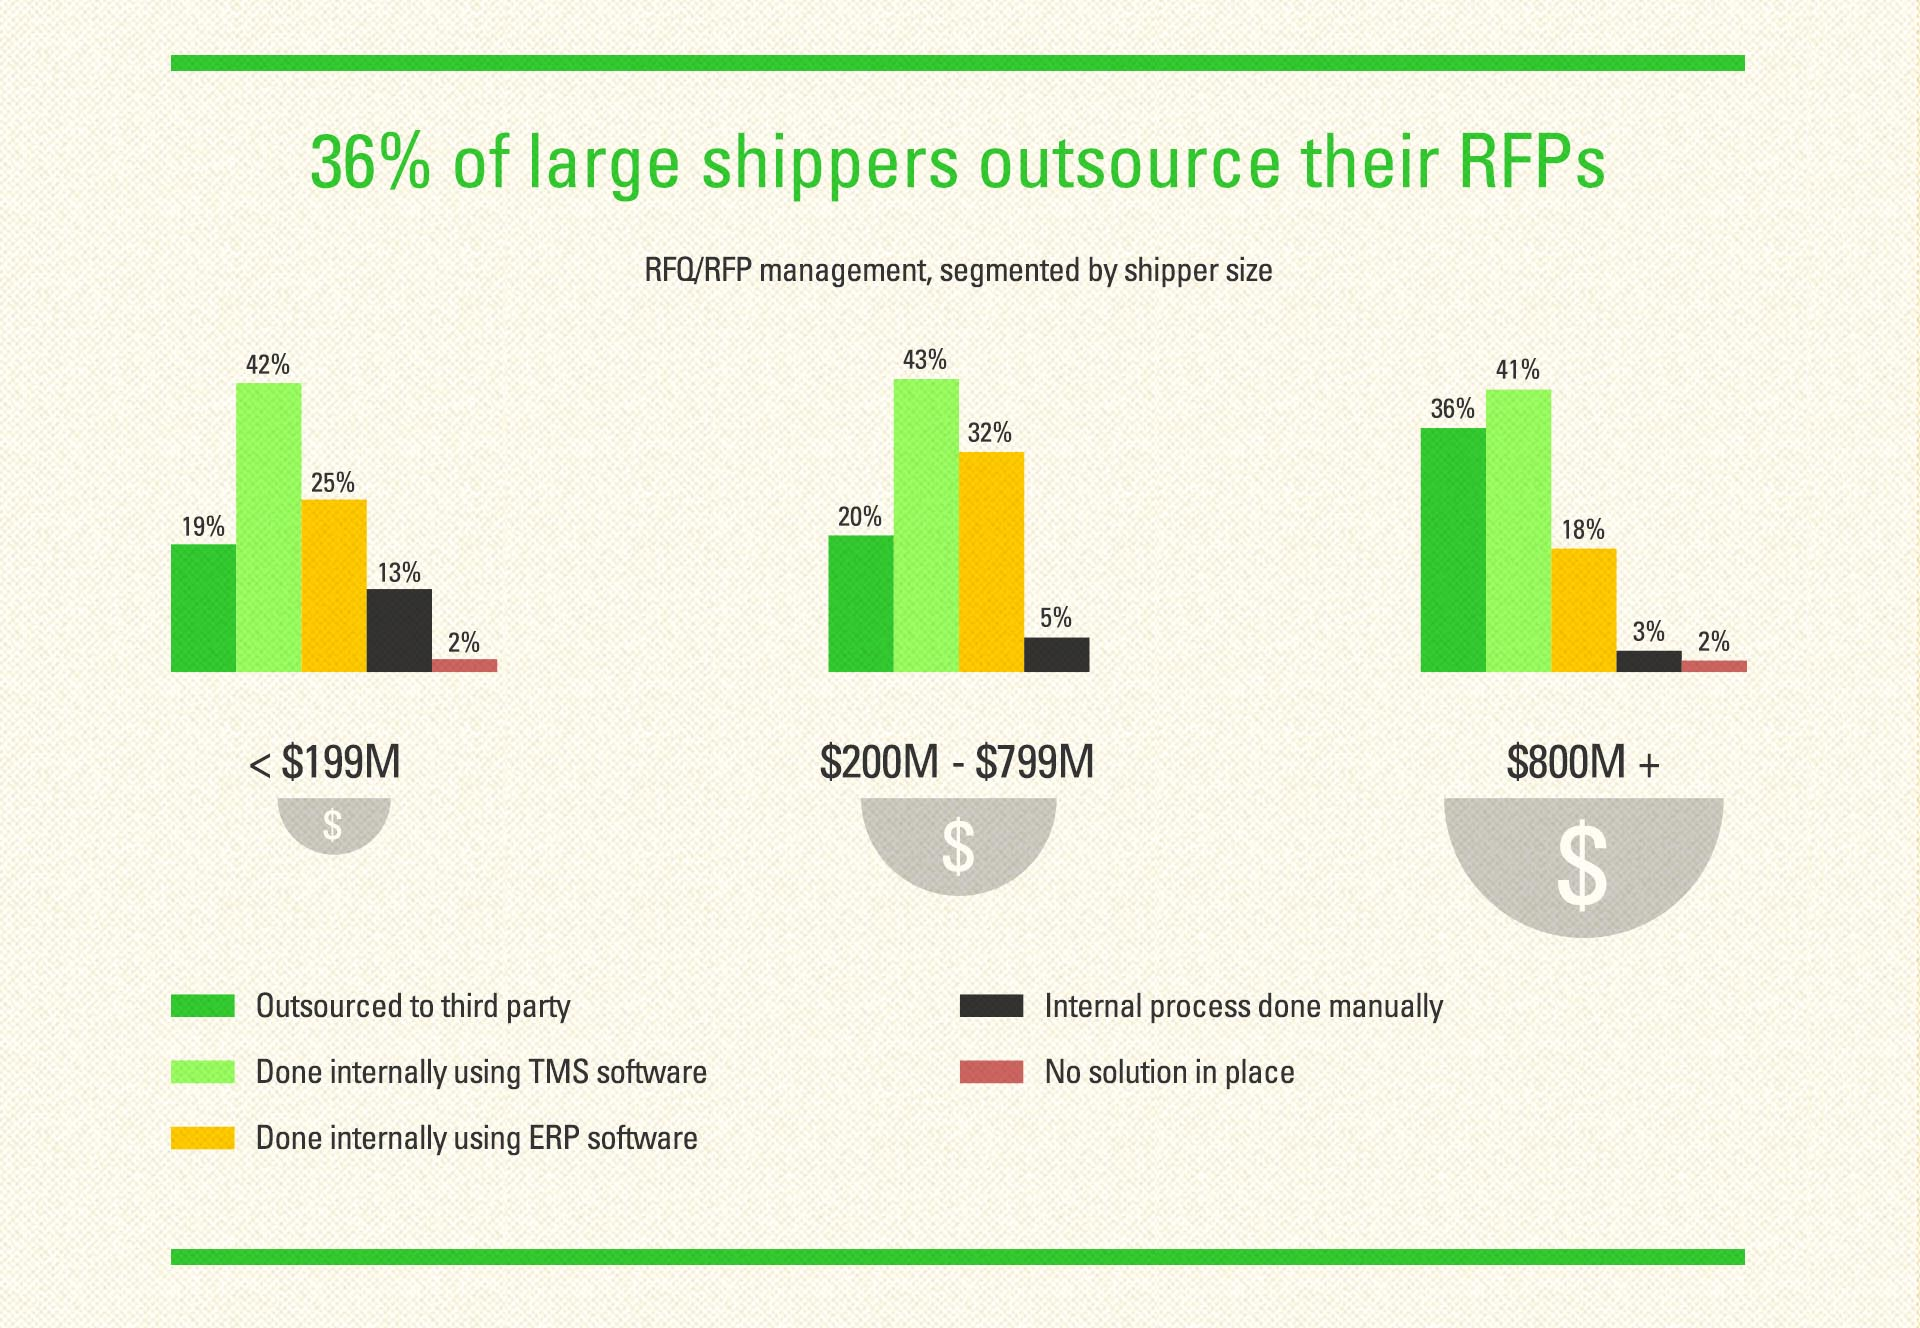 36 percent of large shippers outsource their RFP's graphic